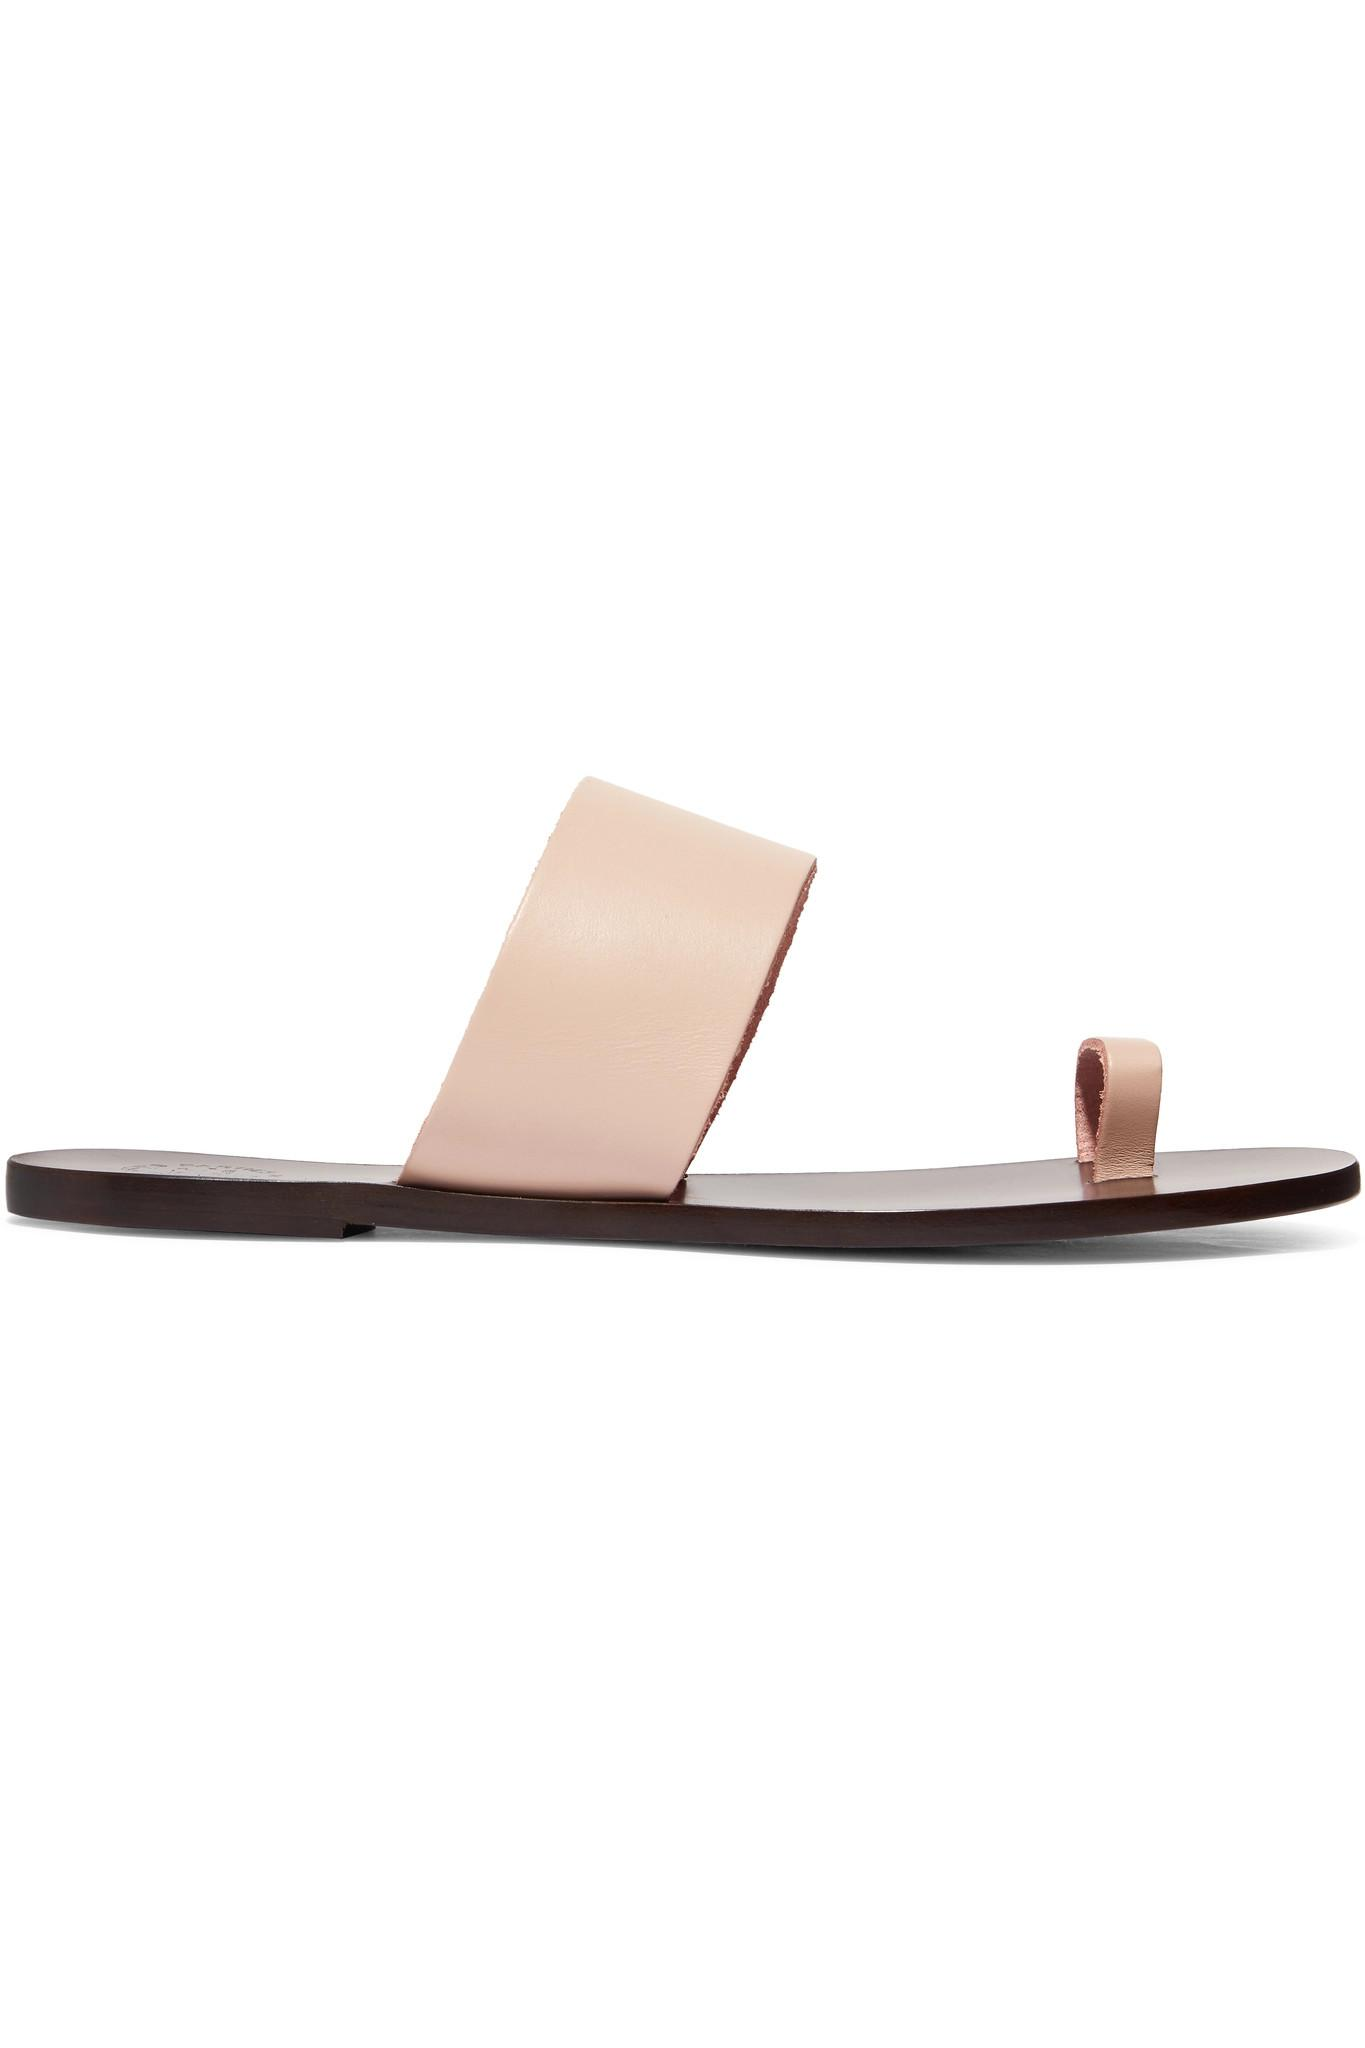 Astrid Leather Sandals - Pink ATP Atelier Outlet Release Dates 6N8QT